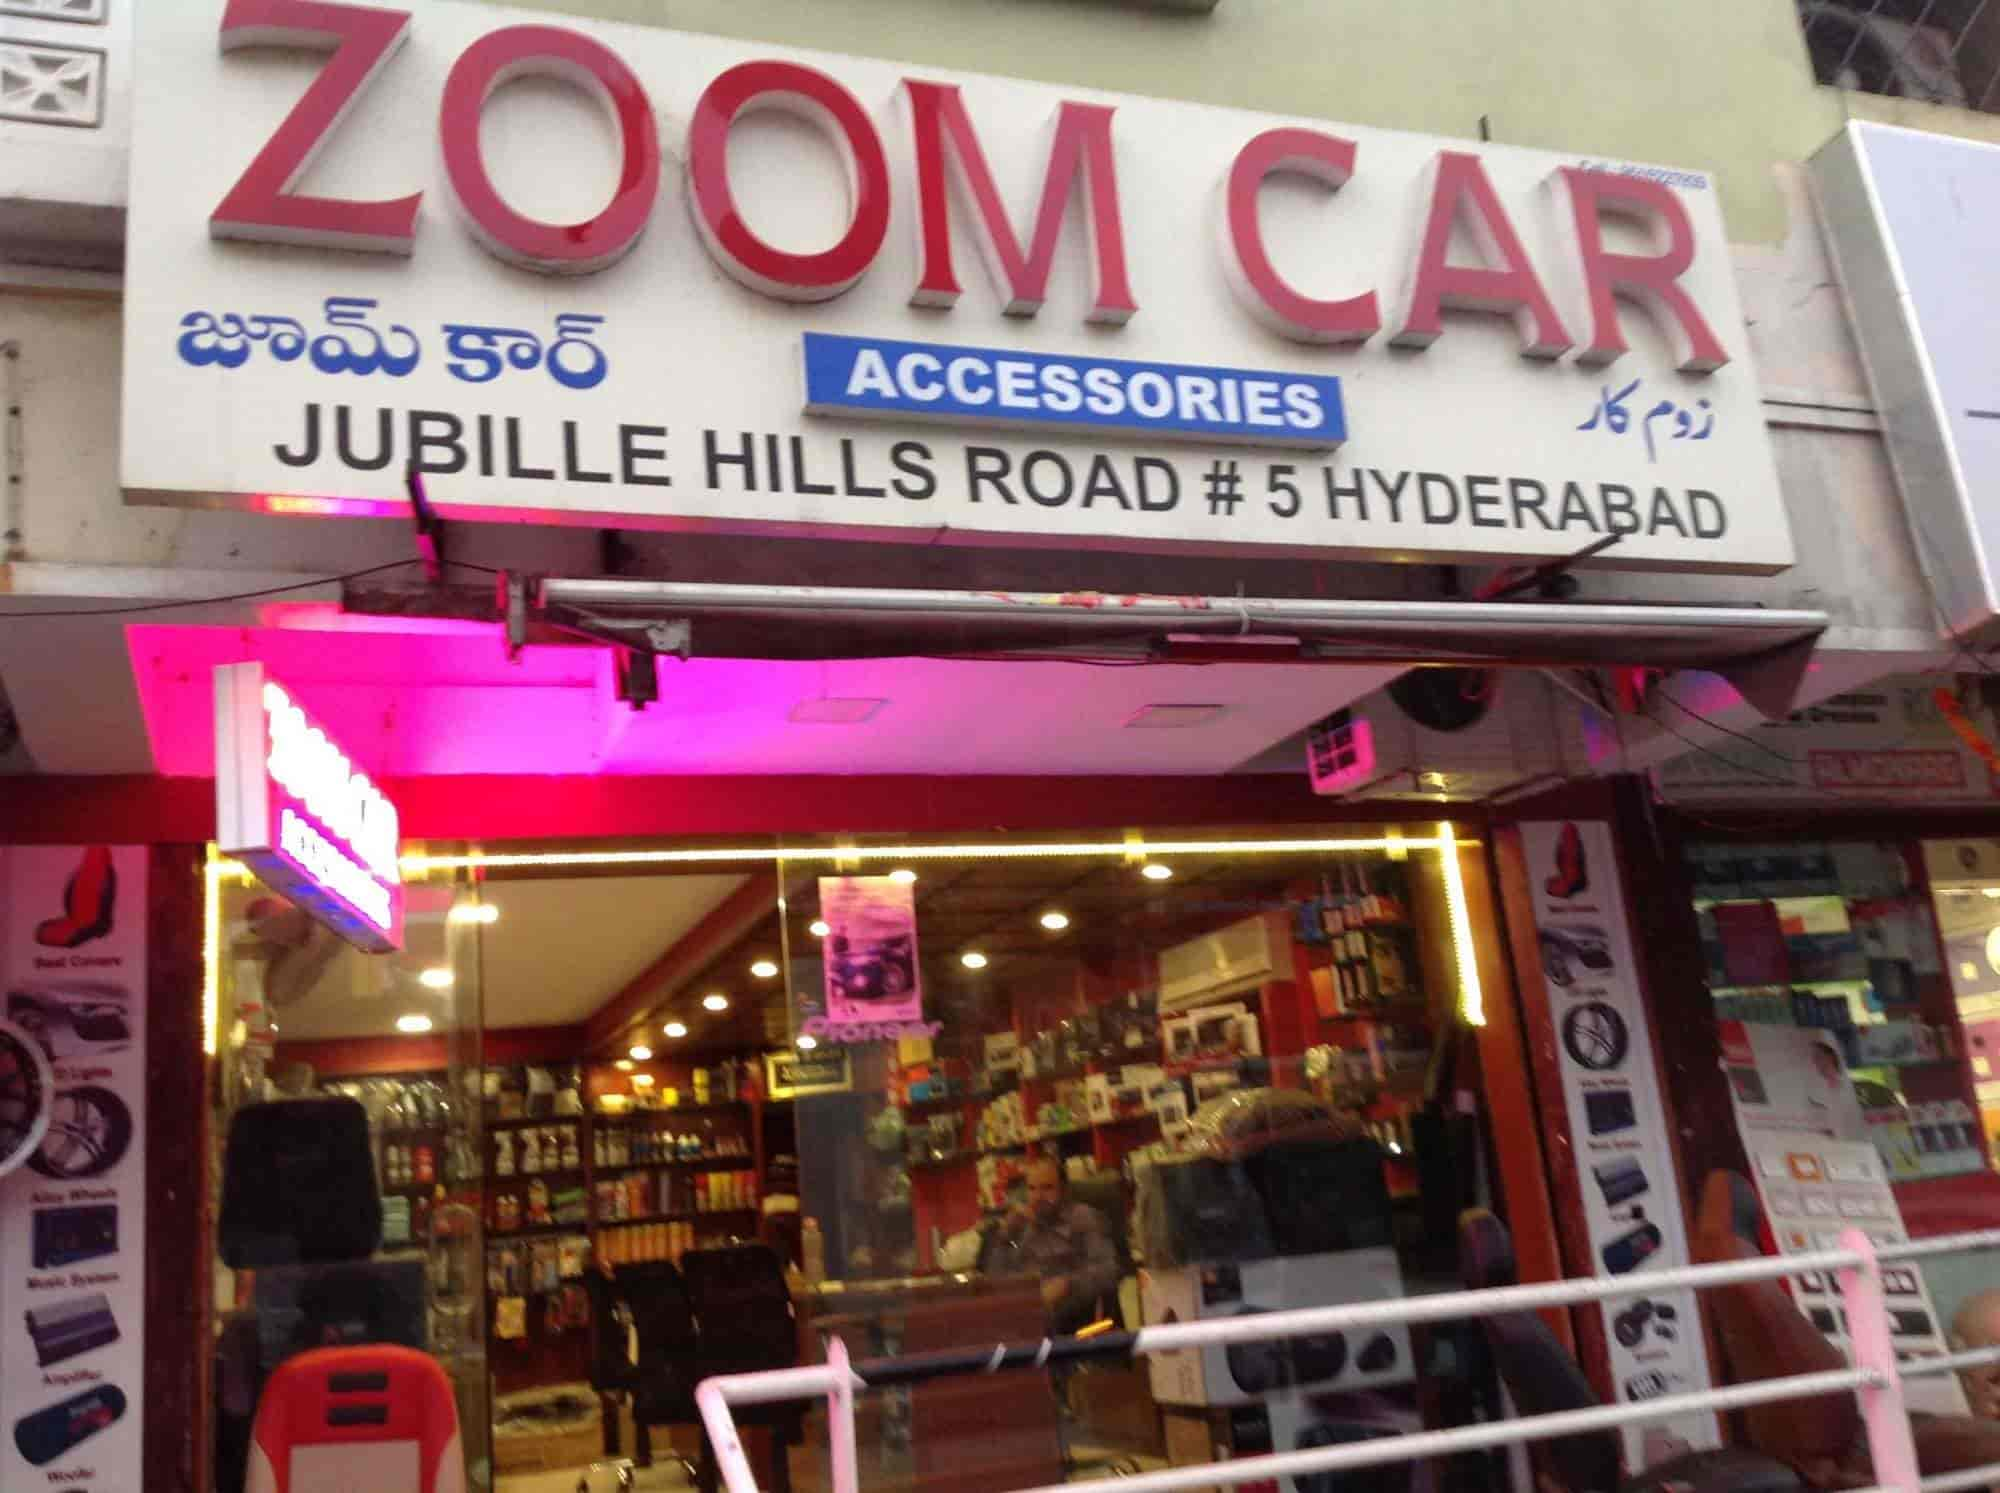 zoom car accessories Photos, Jubilee Hills, Hyderabad- Pictures ...